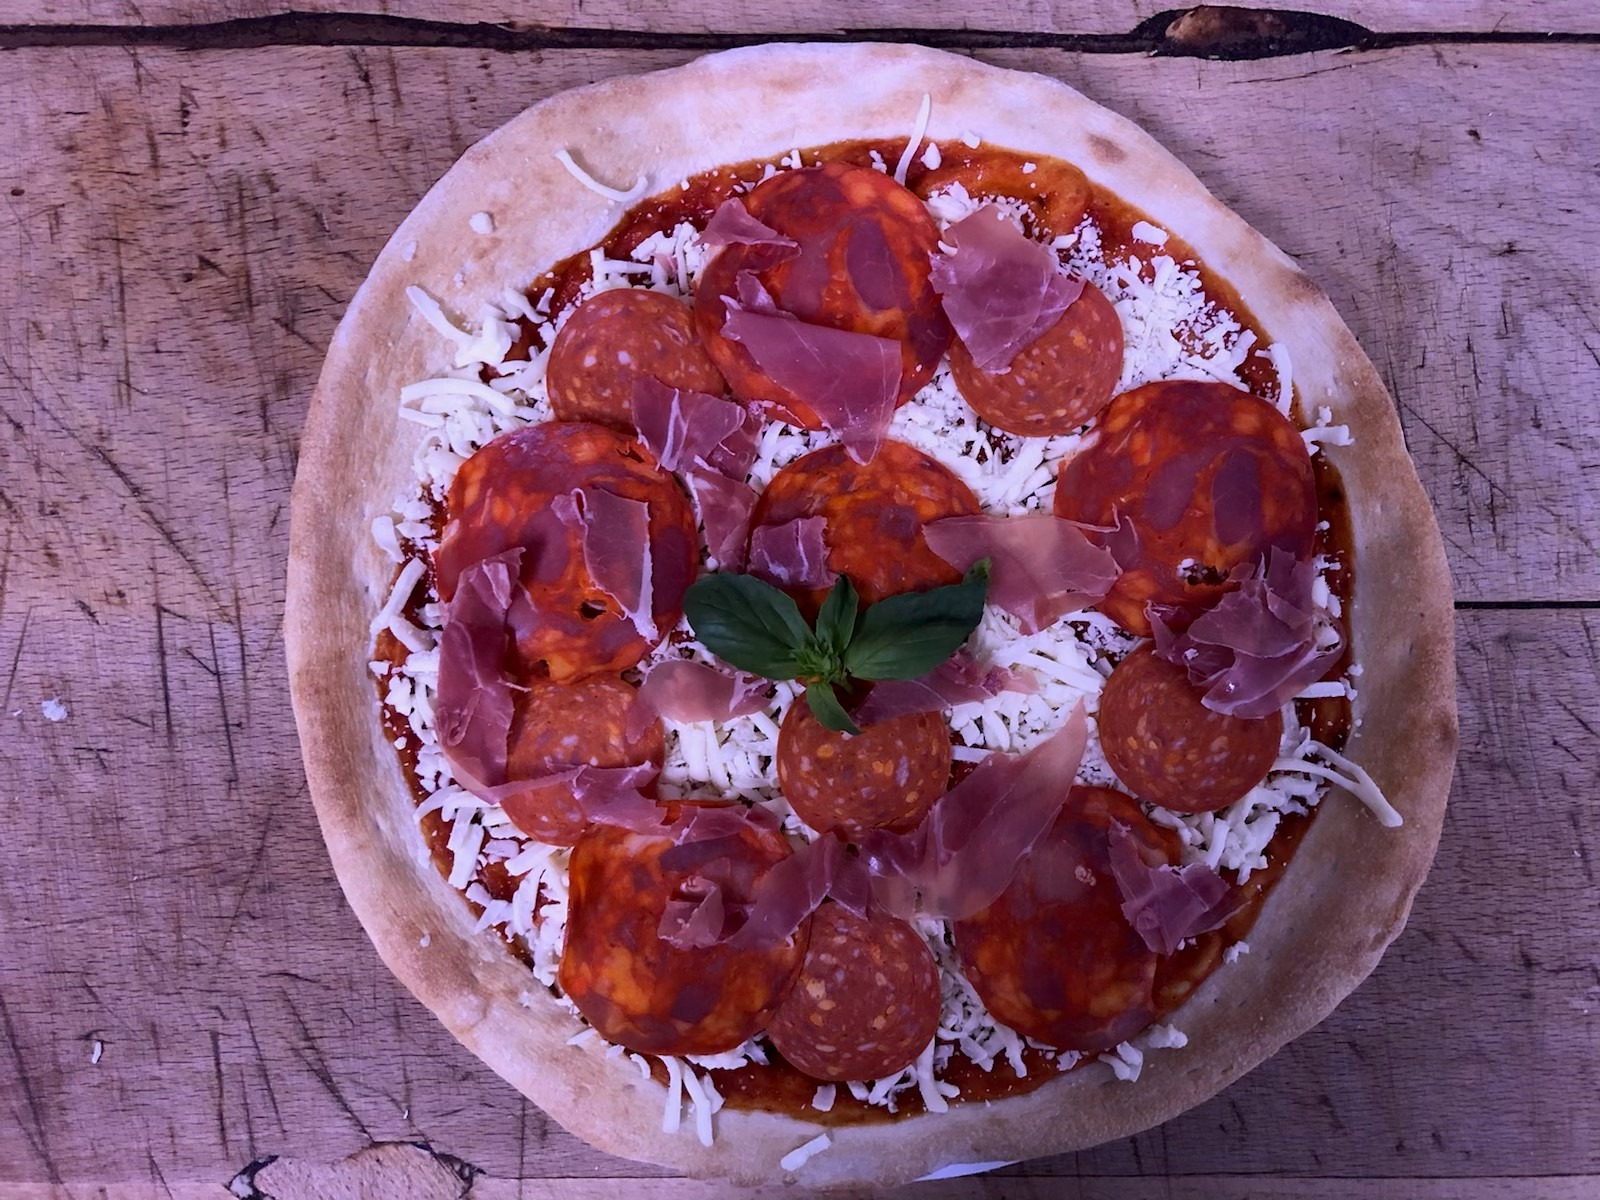 """Slater's Home Made Sourdough Pizza - The Maiale Troia """"The Slutty Pig"""""""